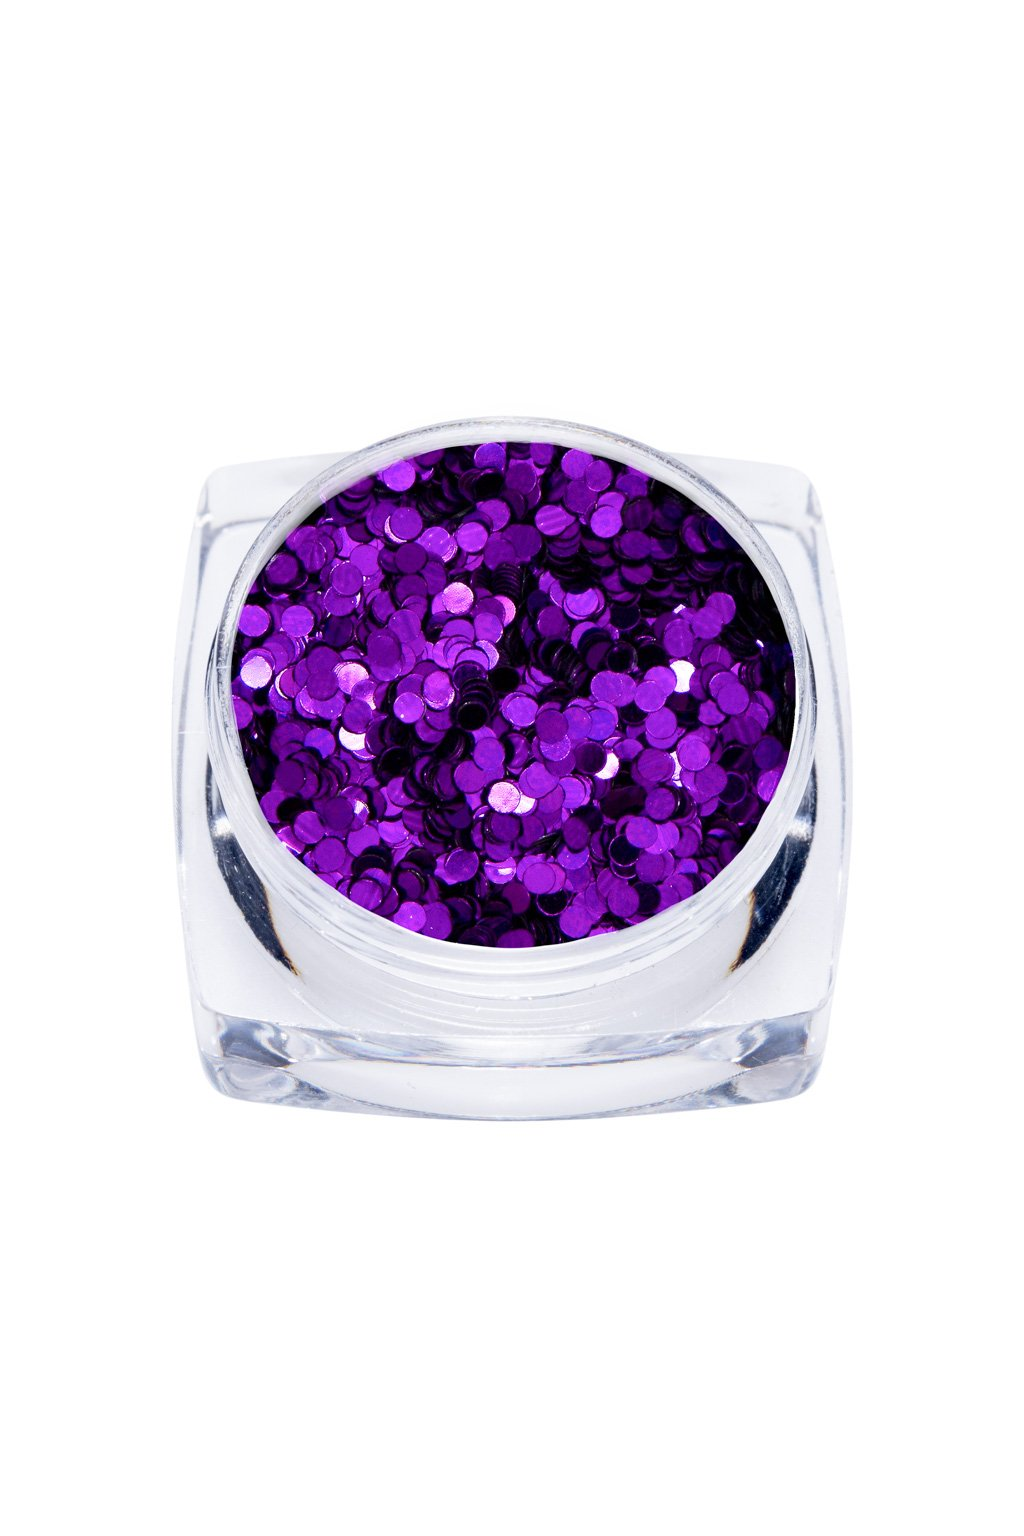 24023 minipihy chrome purple 1mm